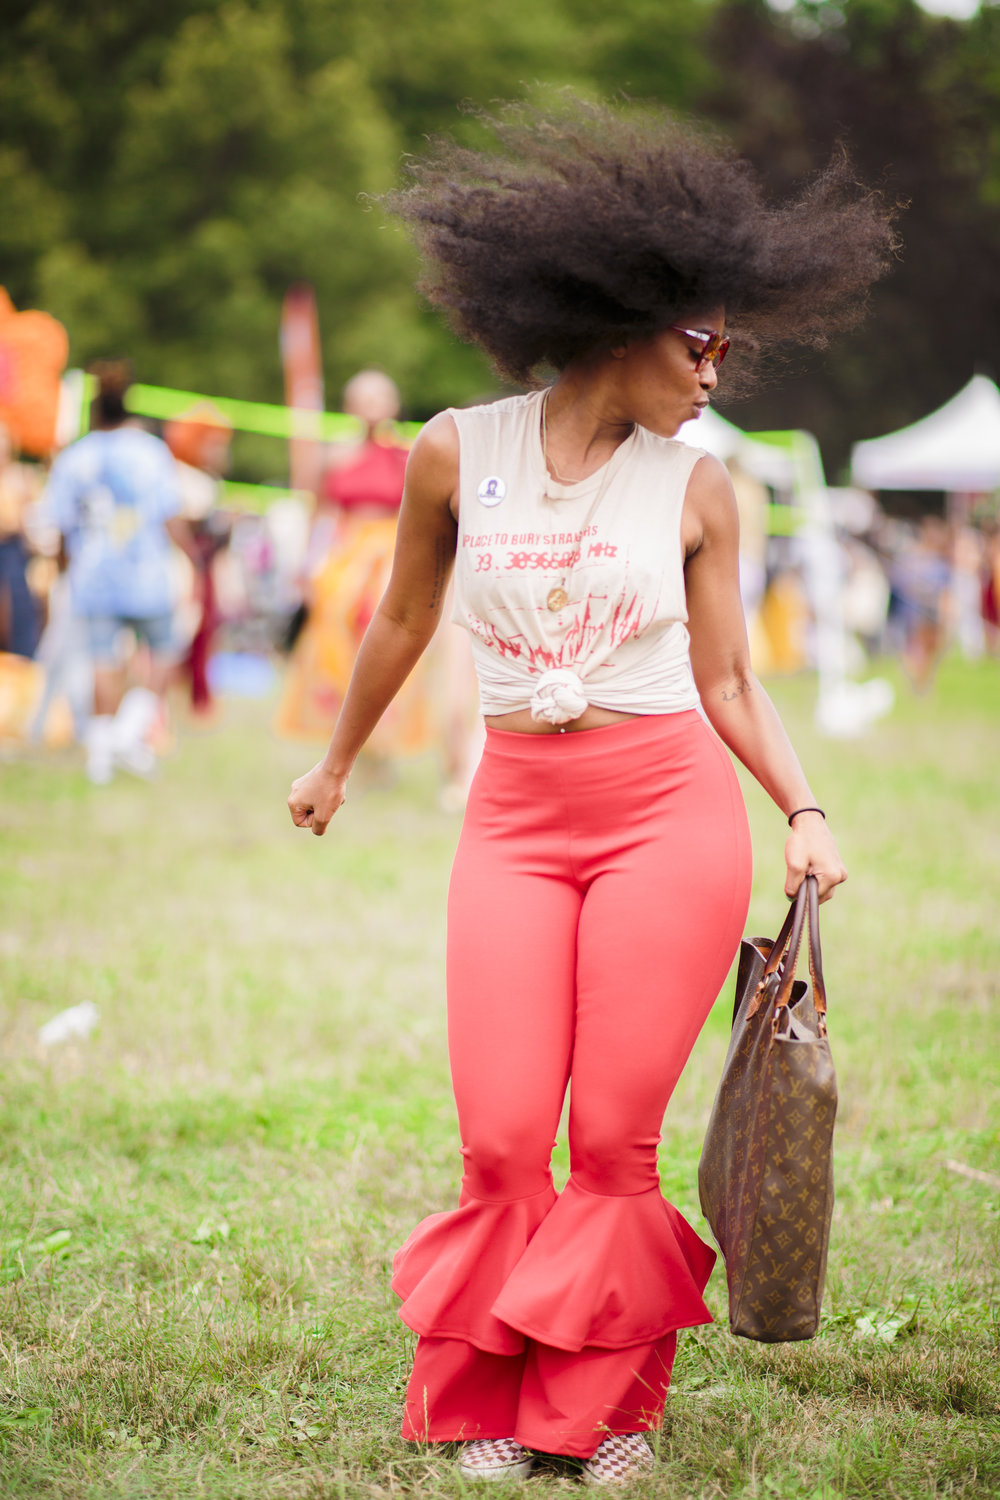 The Curly Girl Collective Presents: CURLFEST 2018 - July 21st, 2018 - Photography Coverage Provided By: KOLIN MENDEZ | © 2018 KOLIN MENDEZ PHOTOGRAPHY - www.kolinmendez.com